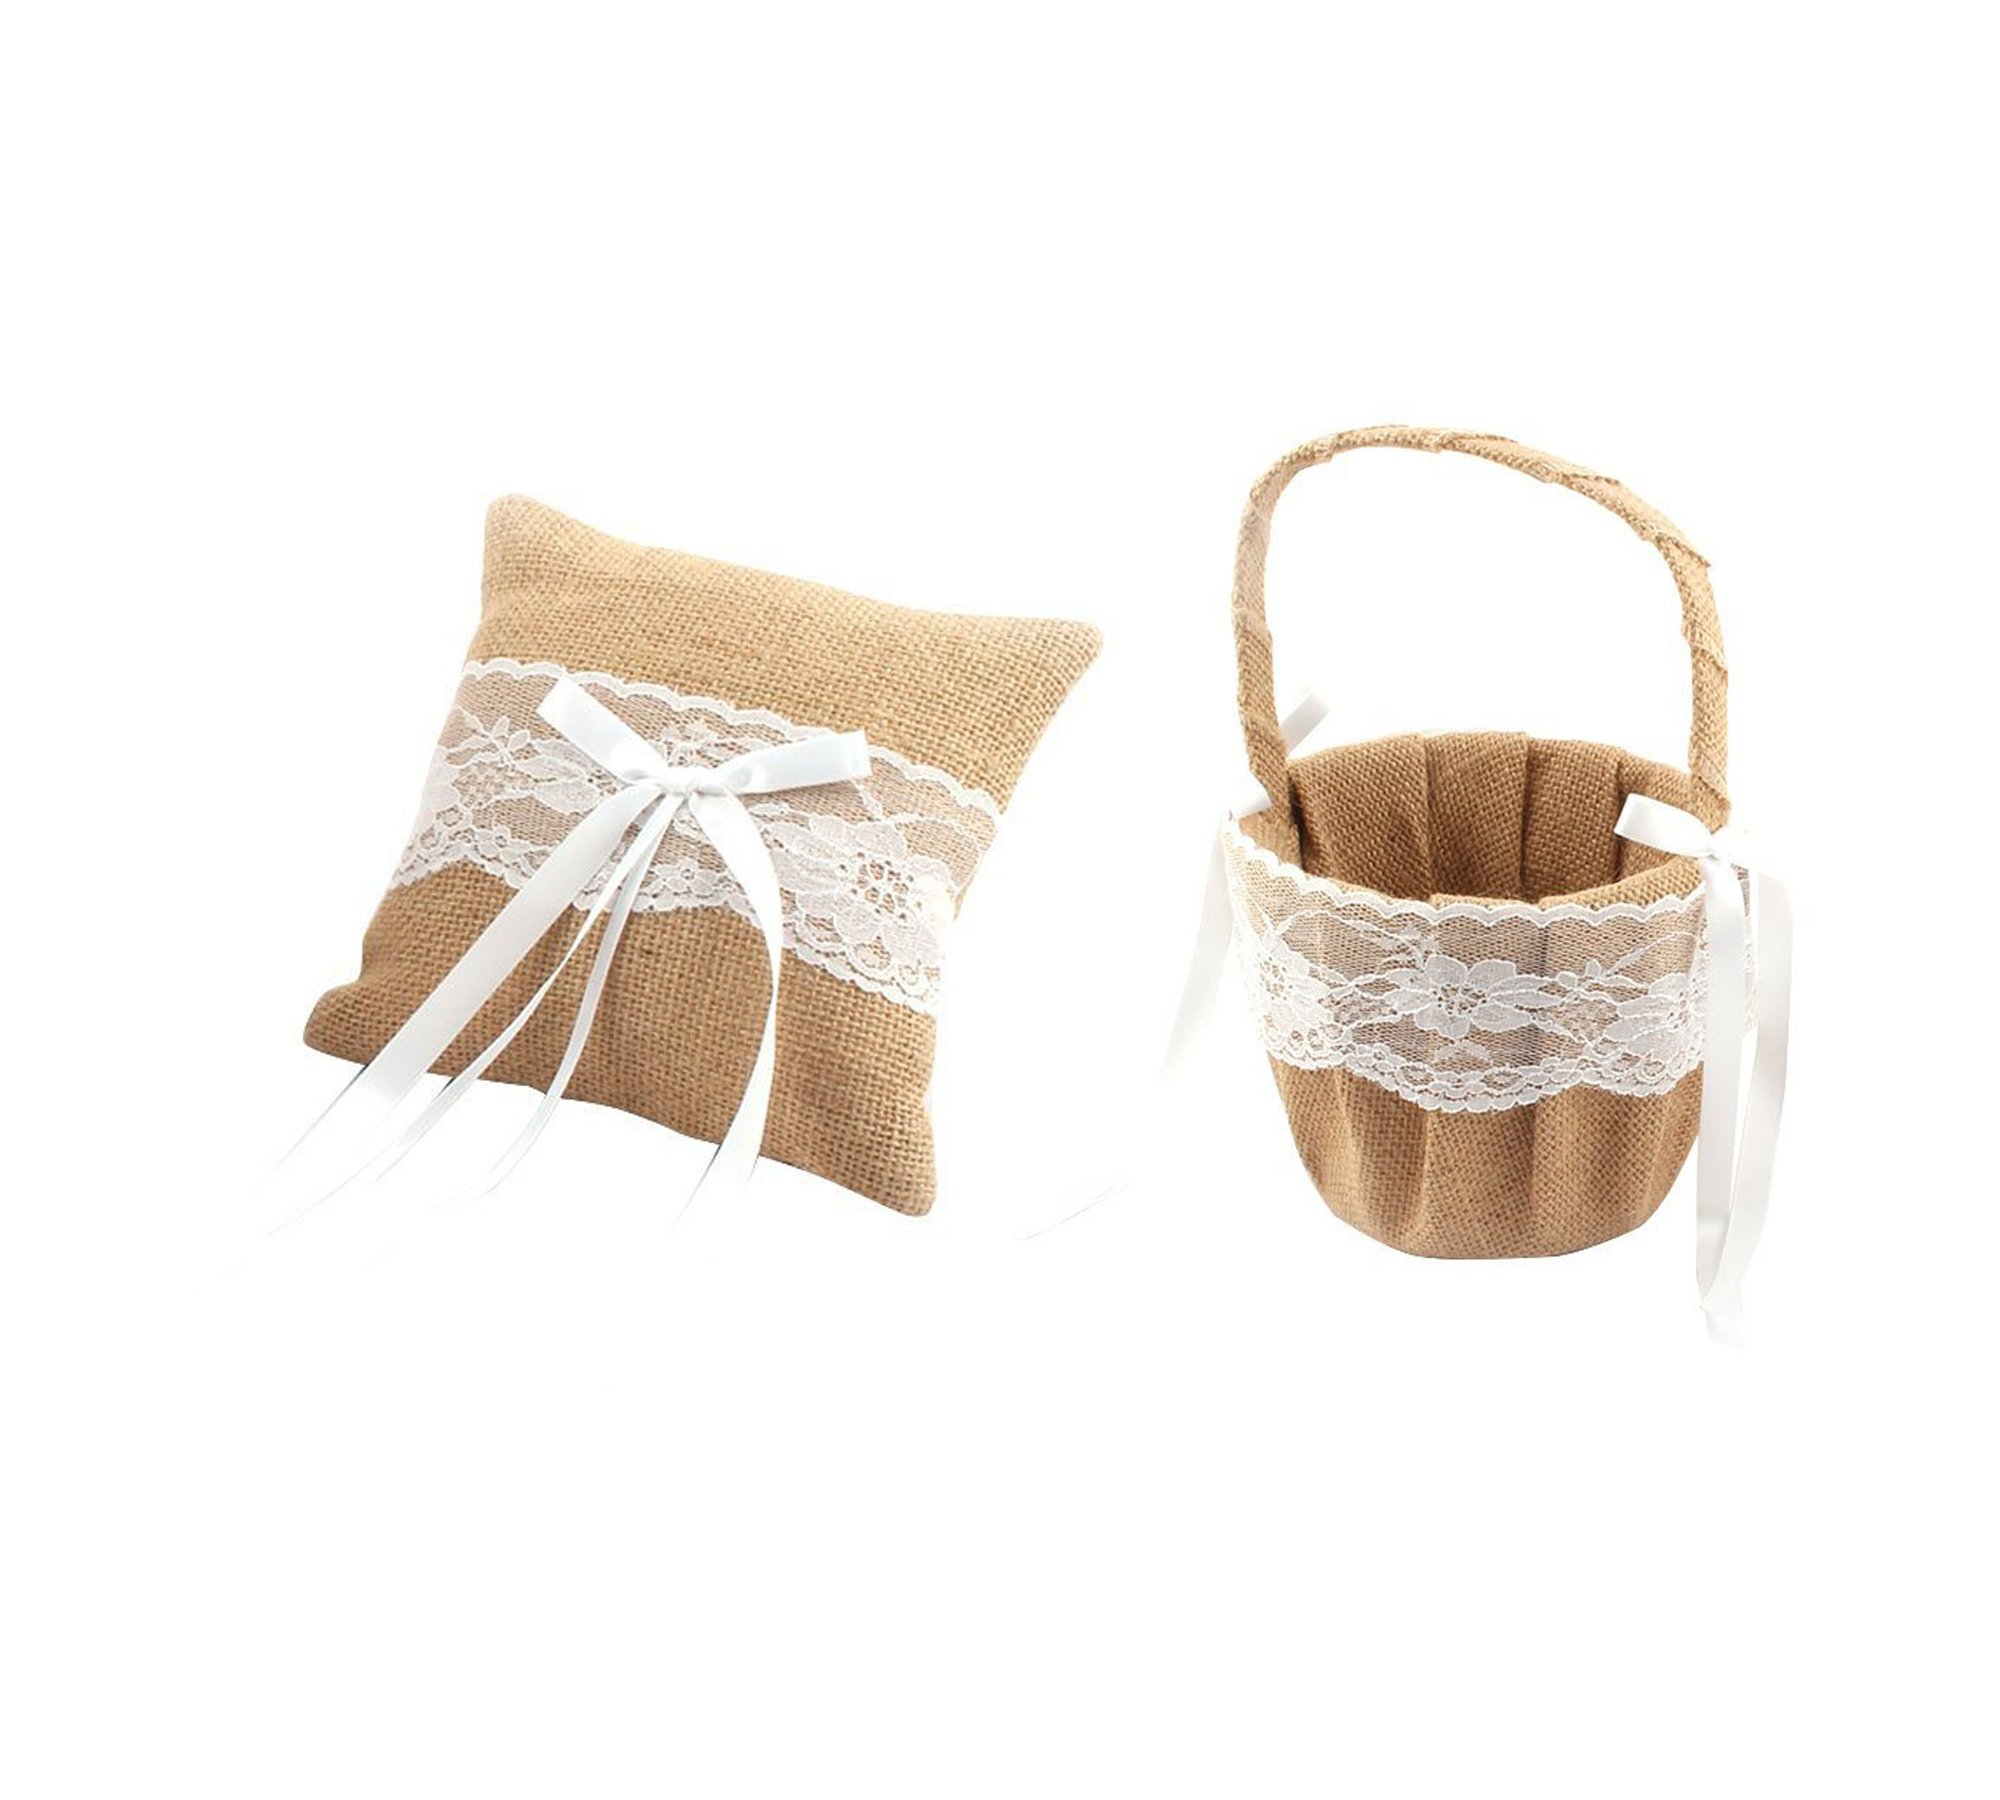 Antrader Romantic Burlap Lace Decor Petals Storage Flower Container Basket Ring Pillow Set for Wedding Anniversary Celebrations Party Decoration (Khaki B) by Antrader